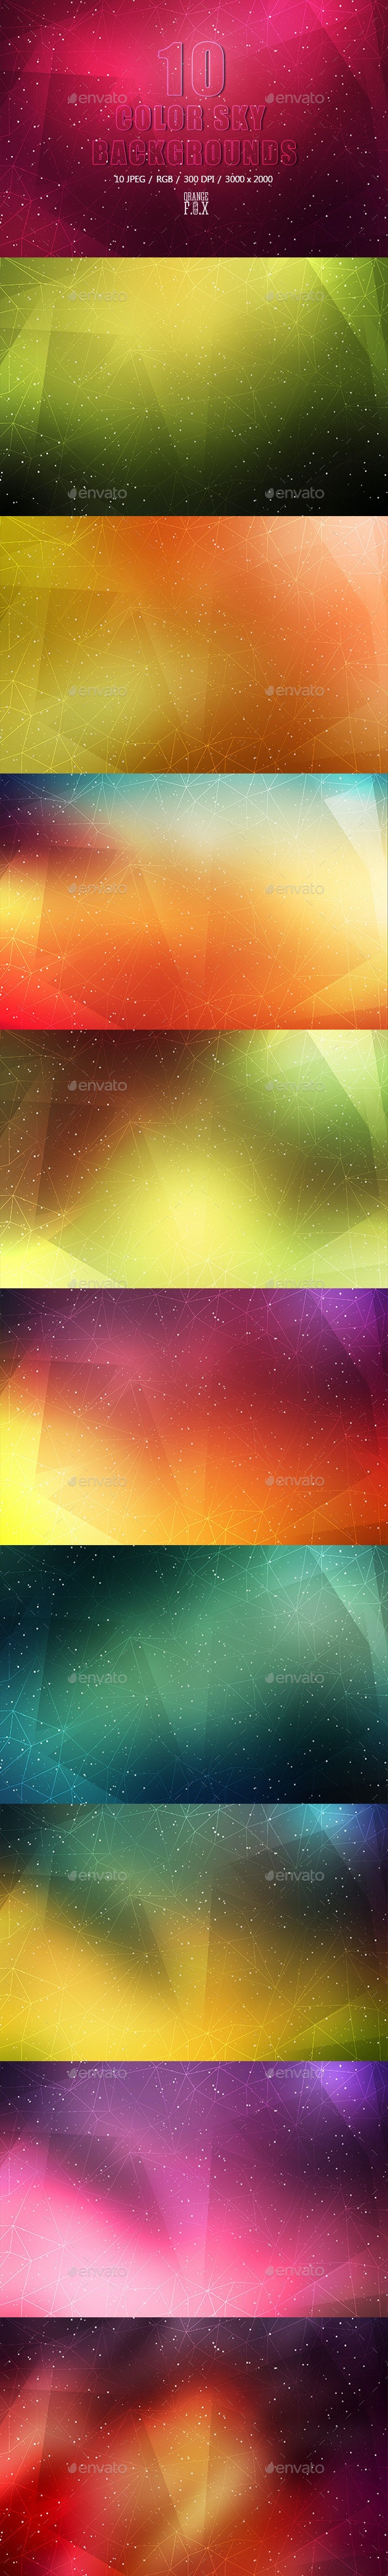 10 Color Sky Backgrounds - Abstract Backgrounds